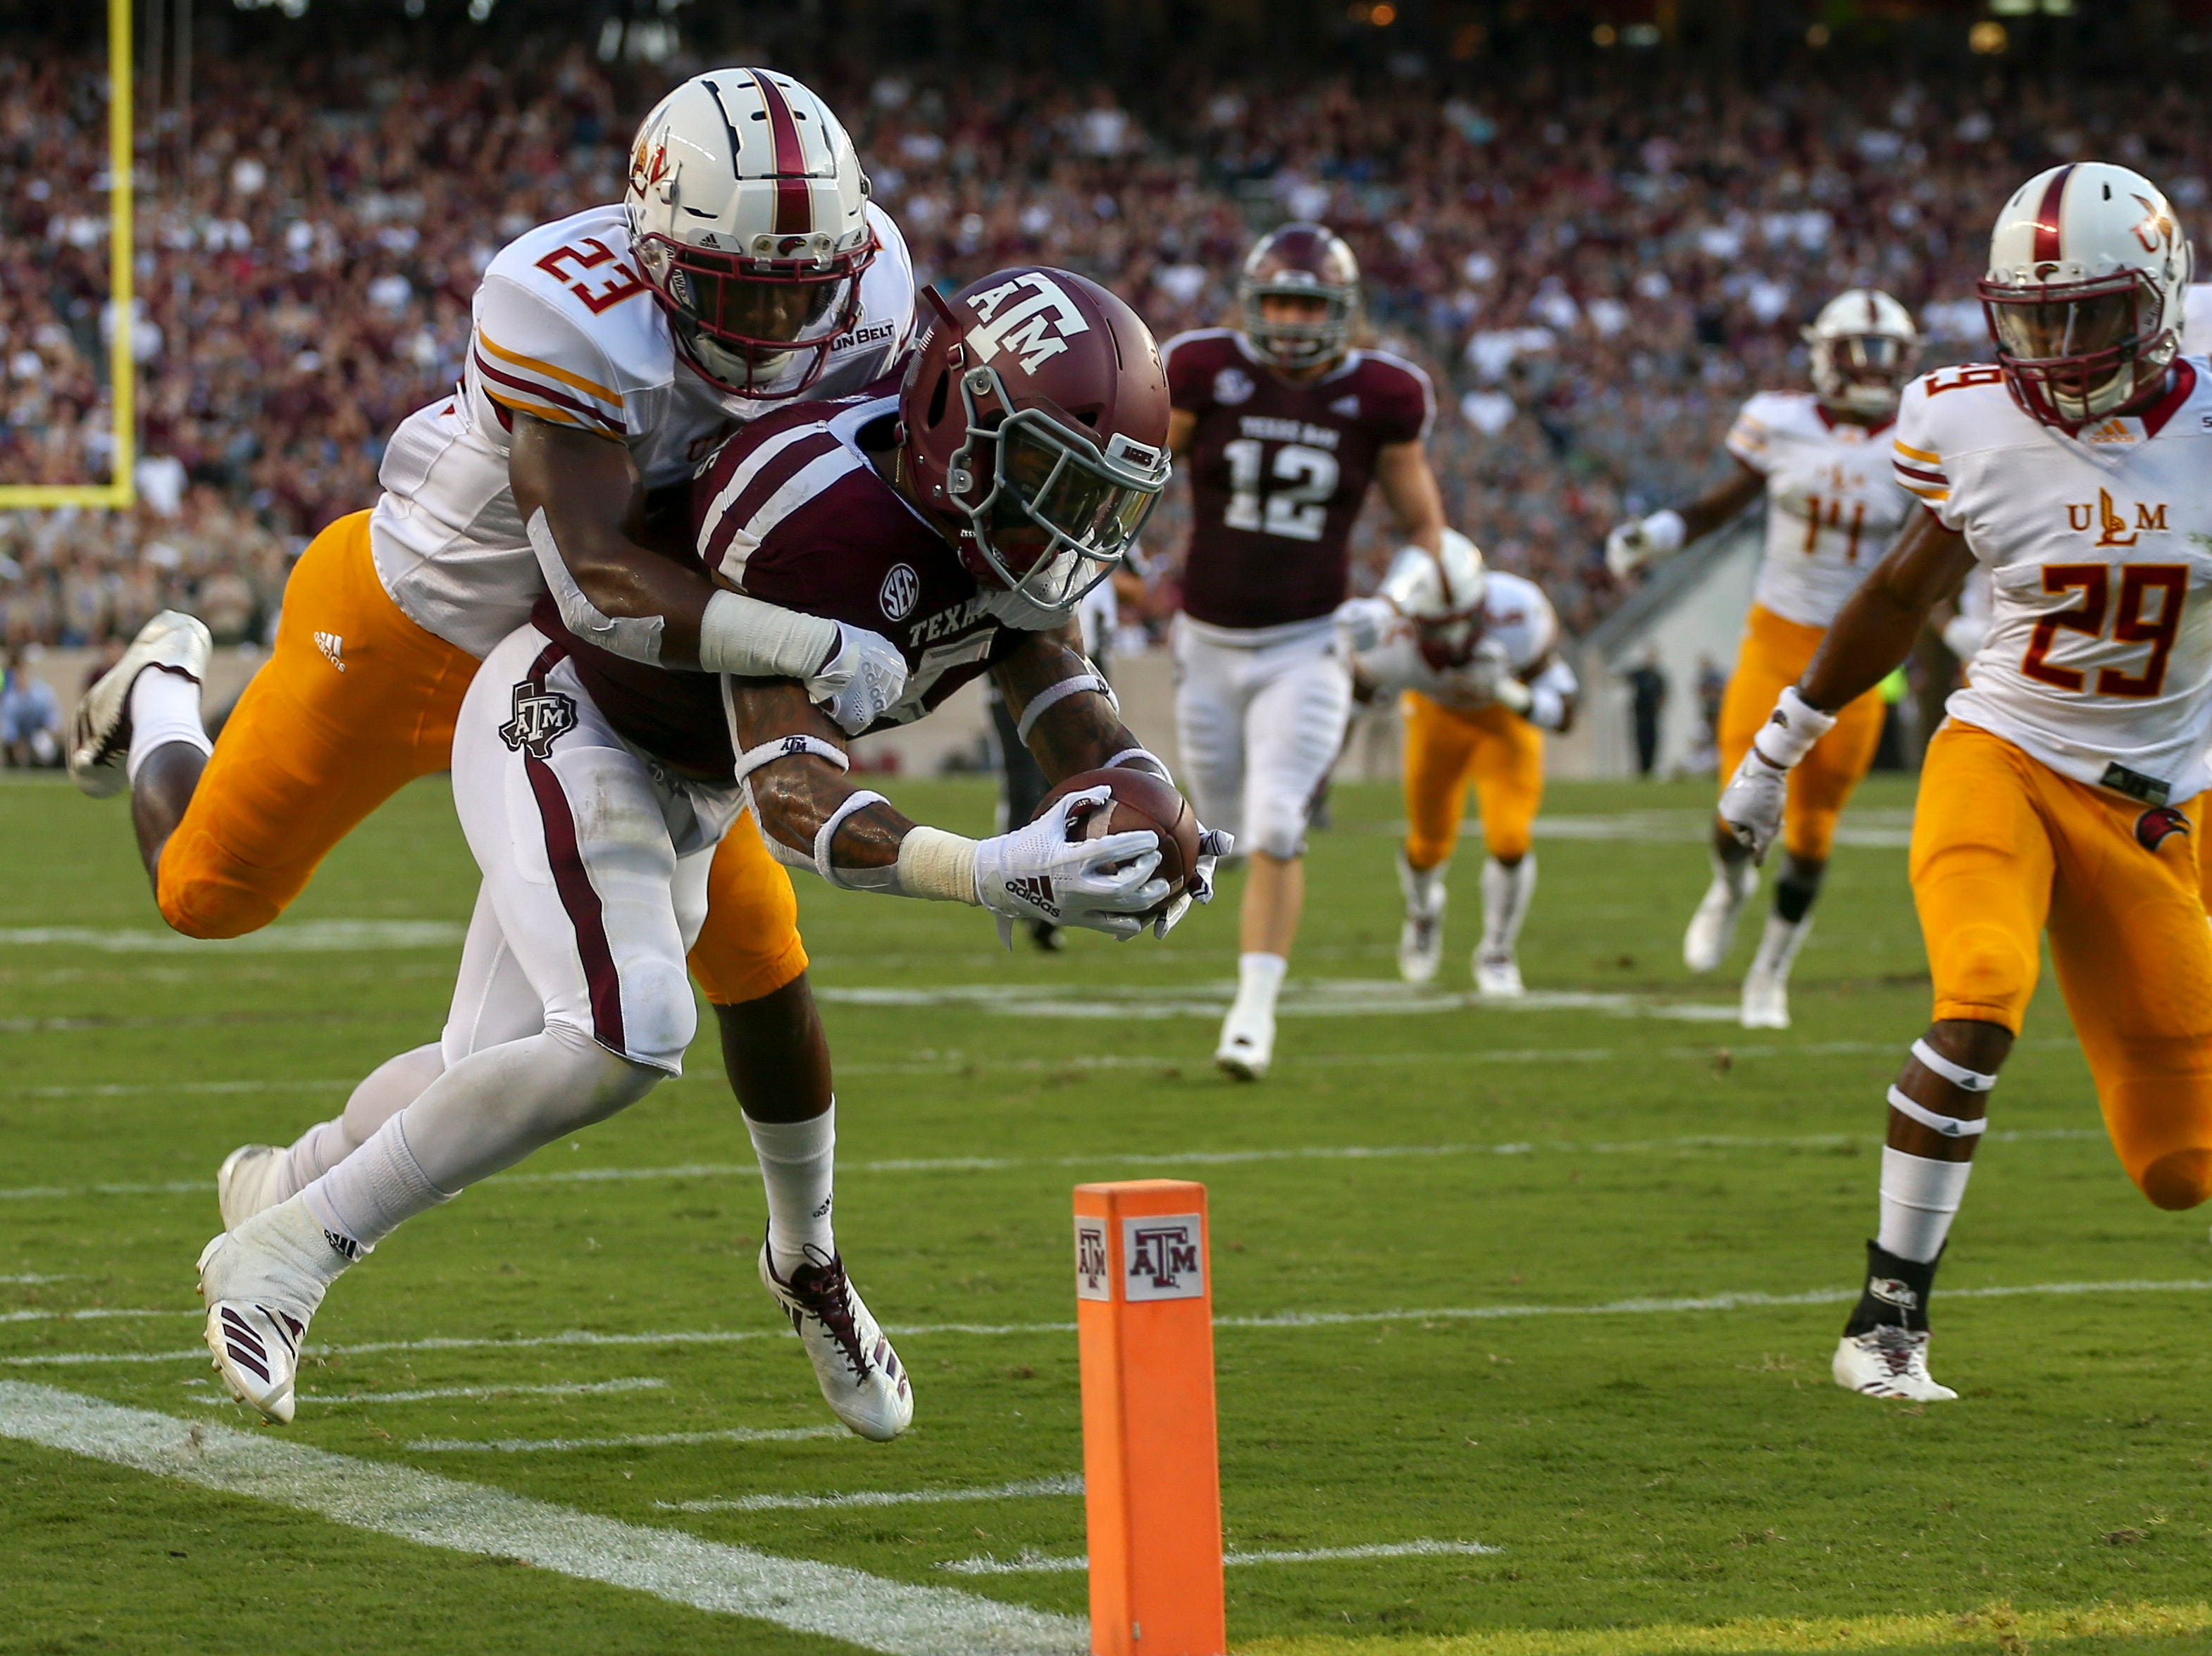 Texas A&M Aggies running back Trayveon Williams (5) dives for the pylon but goes out of bounds during the first quarter against the Louisiana-Monroe Warhawks at Kyle Field.